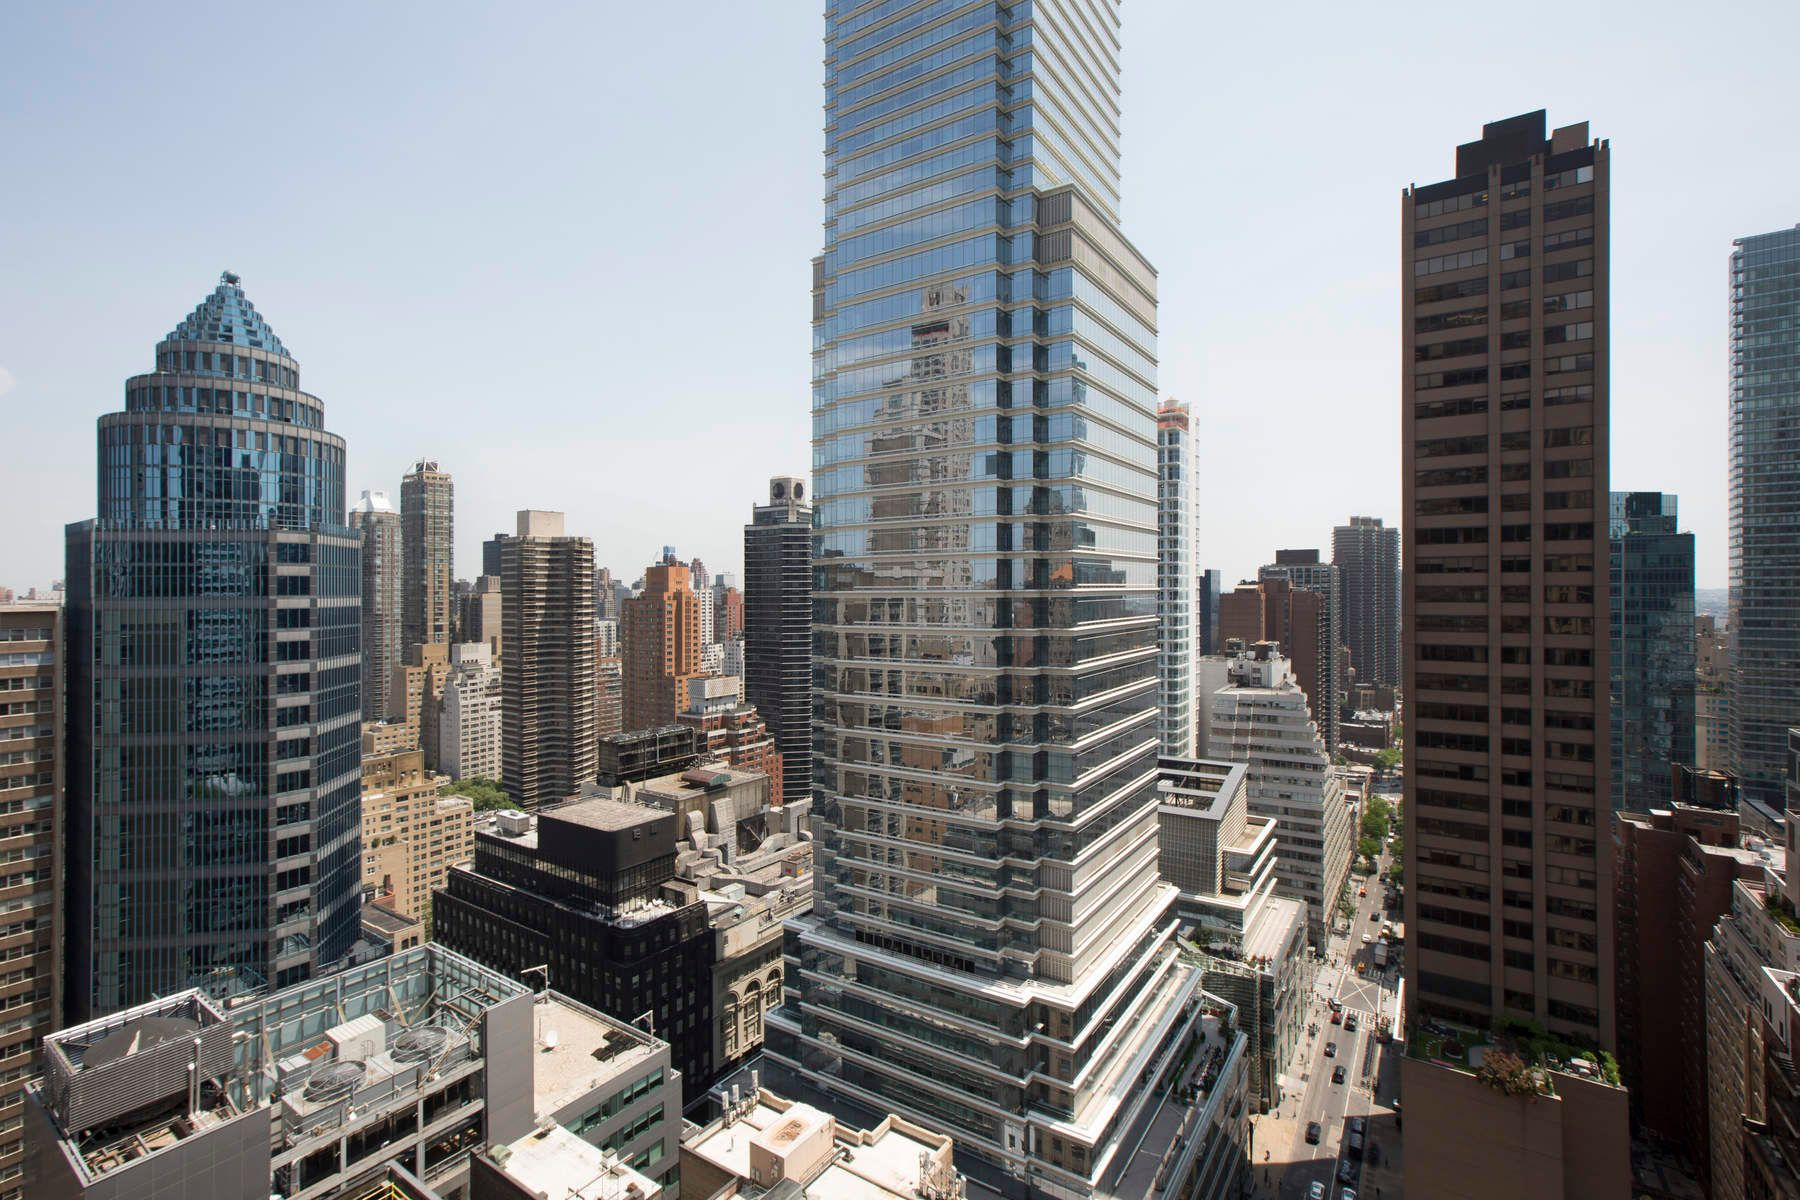 Martine Capdevielle_Luxury Real Estate NYC_117 EAST 57TH STREET APT 34h10.jpg